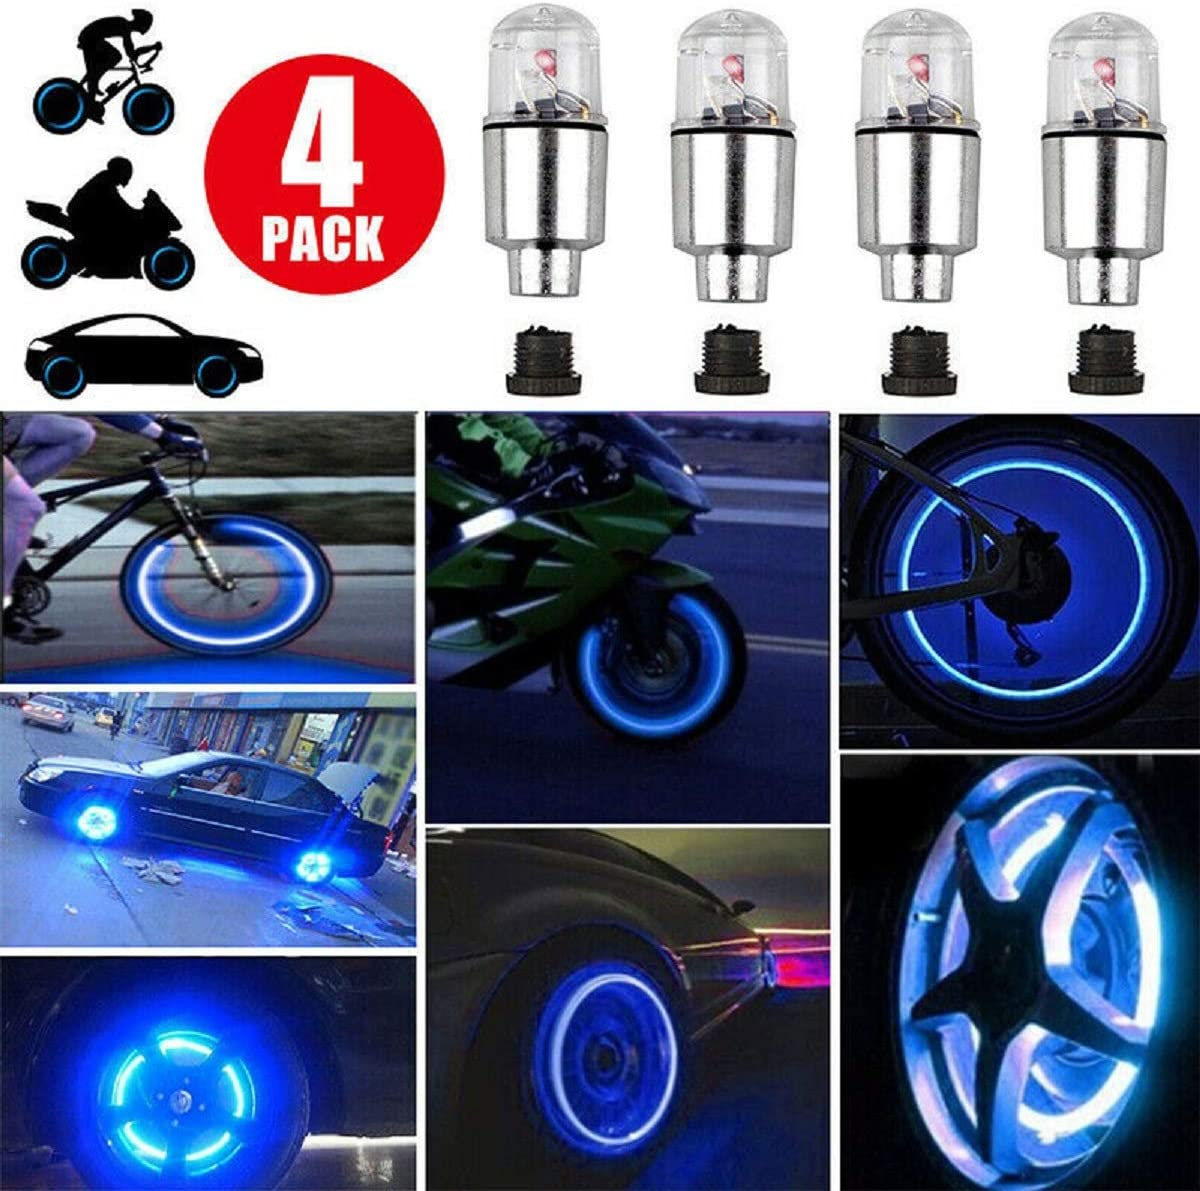 Tyre Valve Cap Light Bicycle Tire Bulbs Air Cover Caps Wheel Rim Accessories